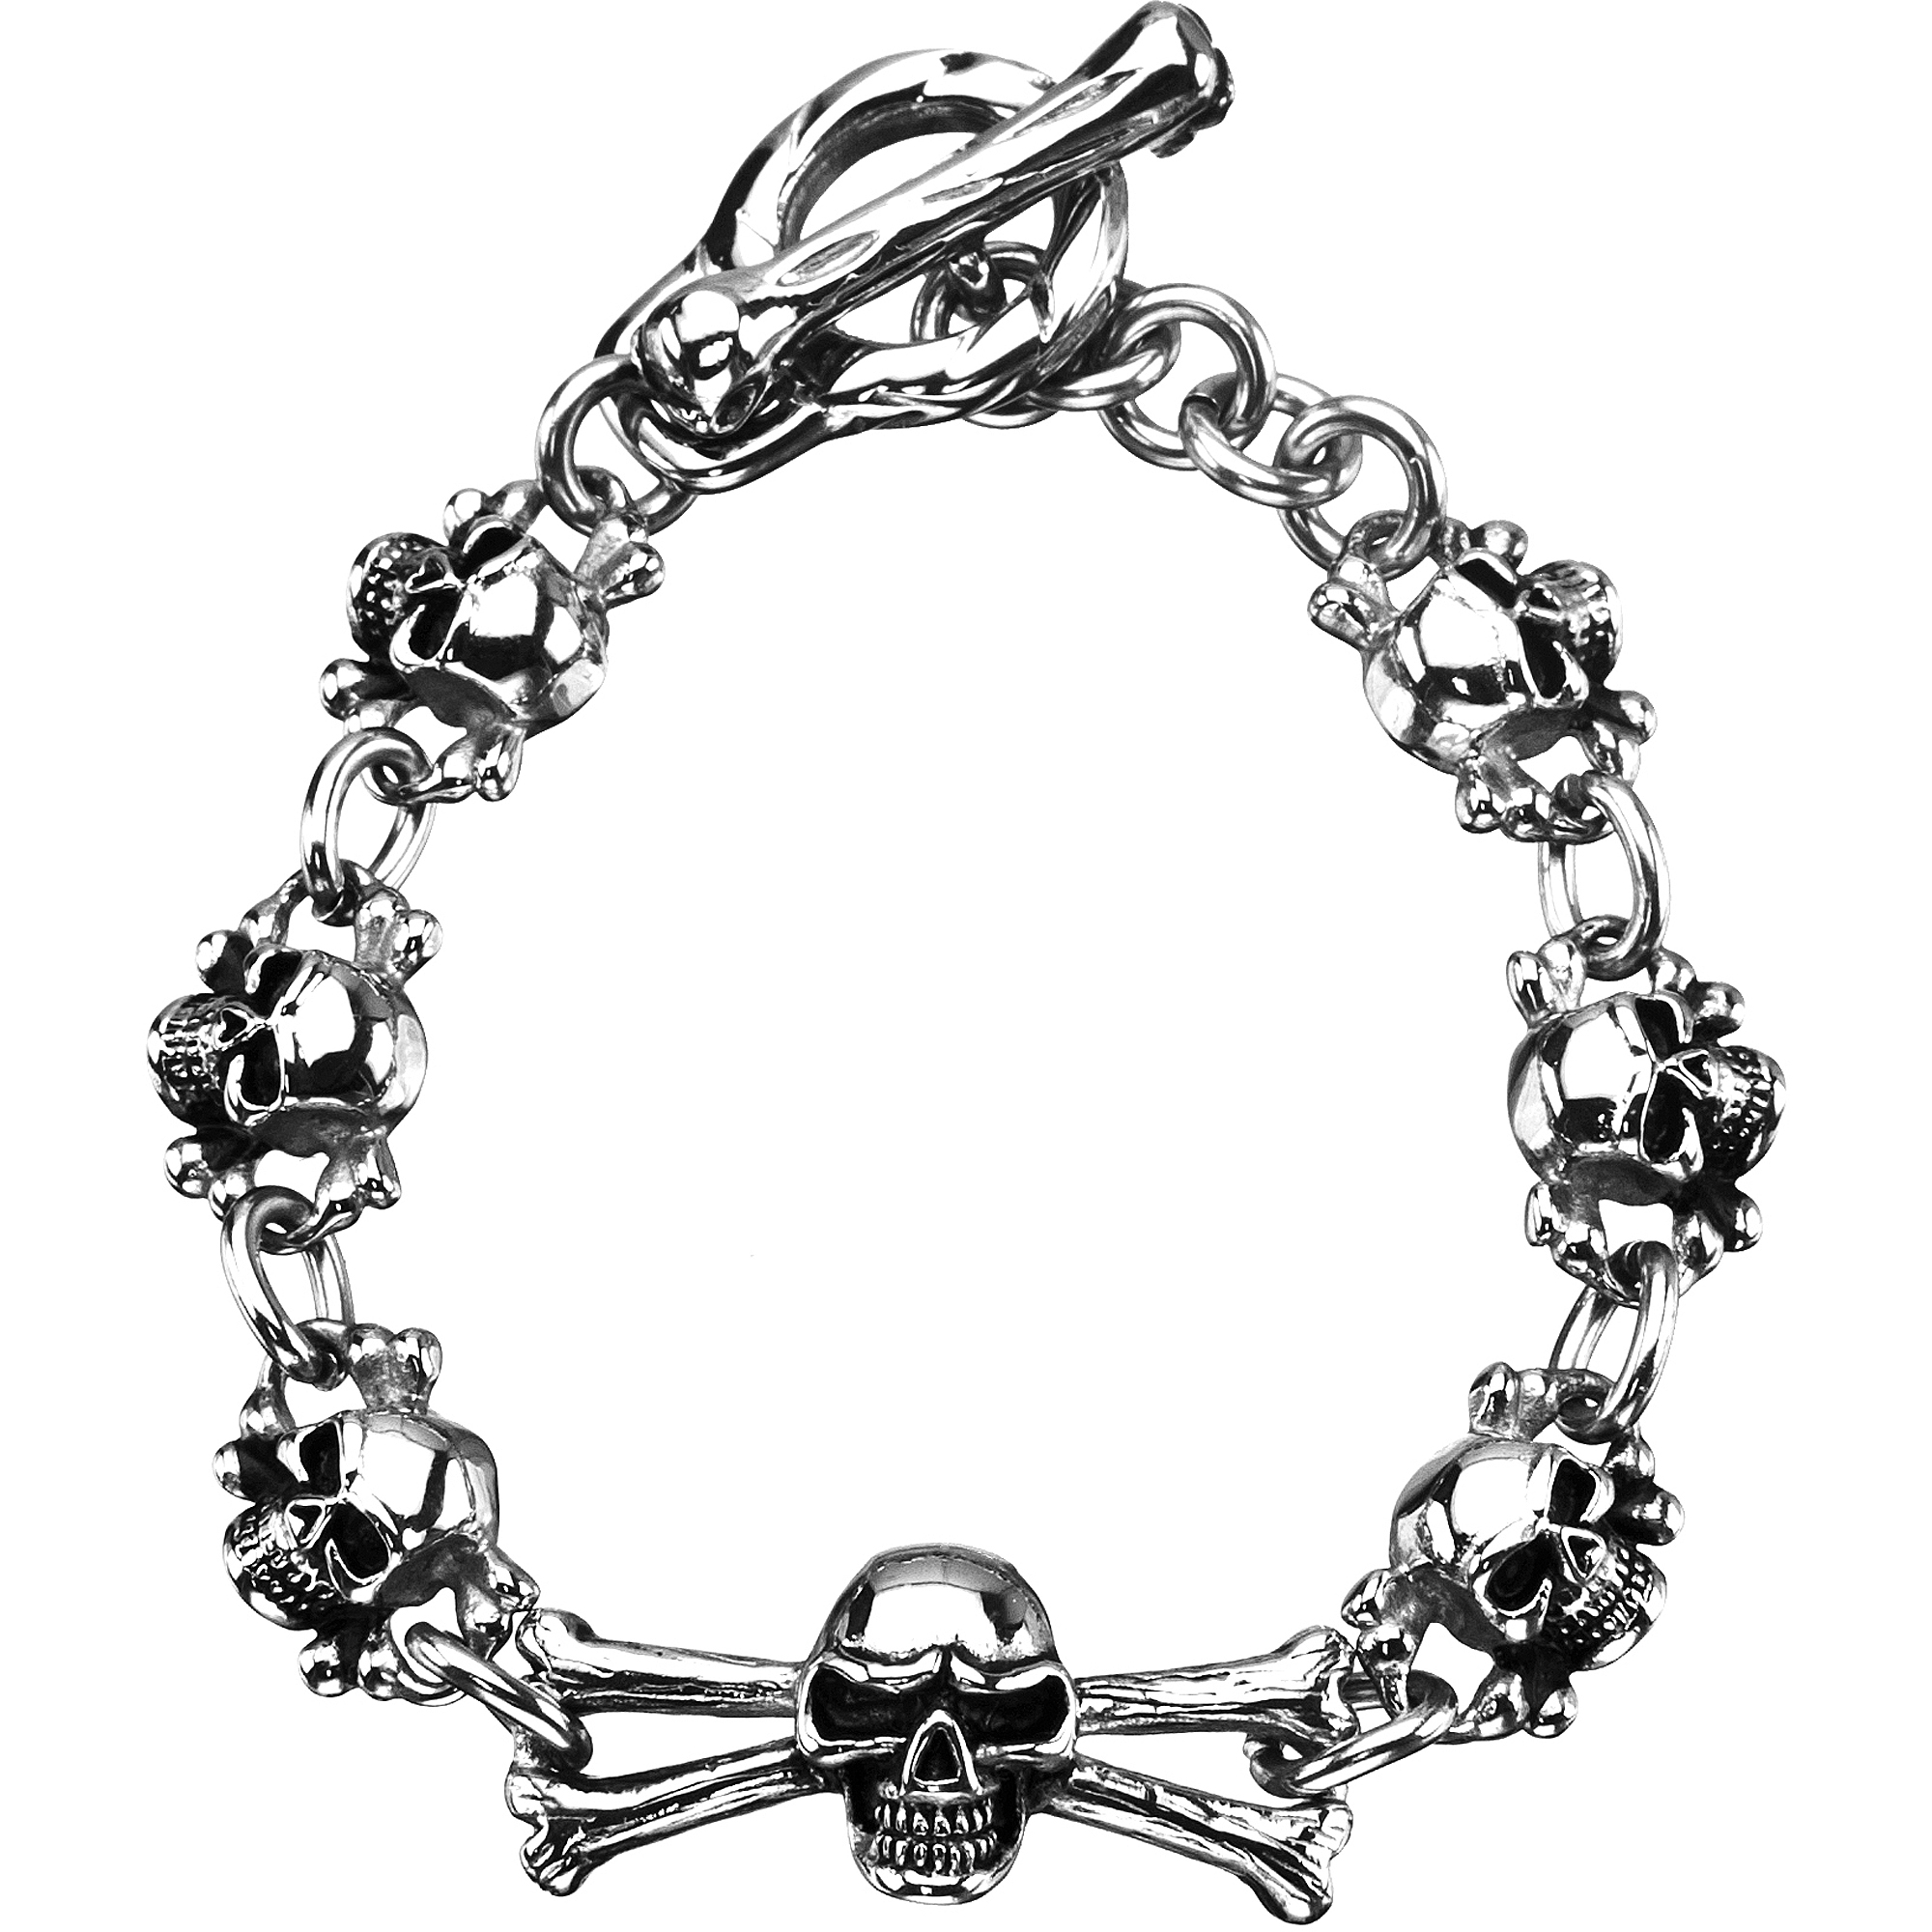 Steel Art Stainless Steel Skull Bracelet, 7.5